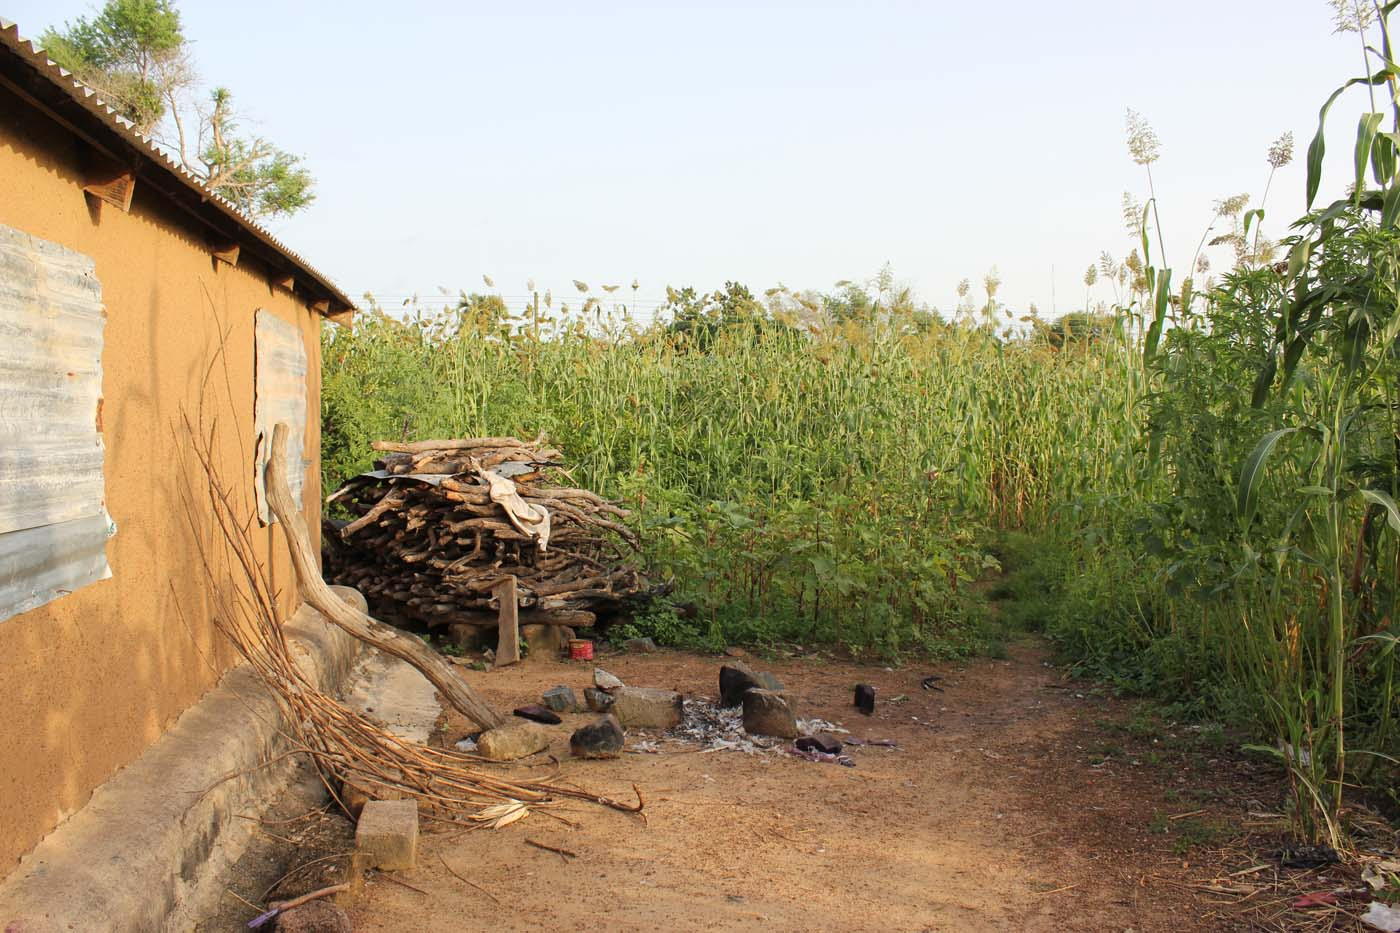 Firewood, millet, and guinea corn are staples